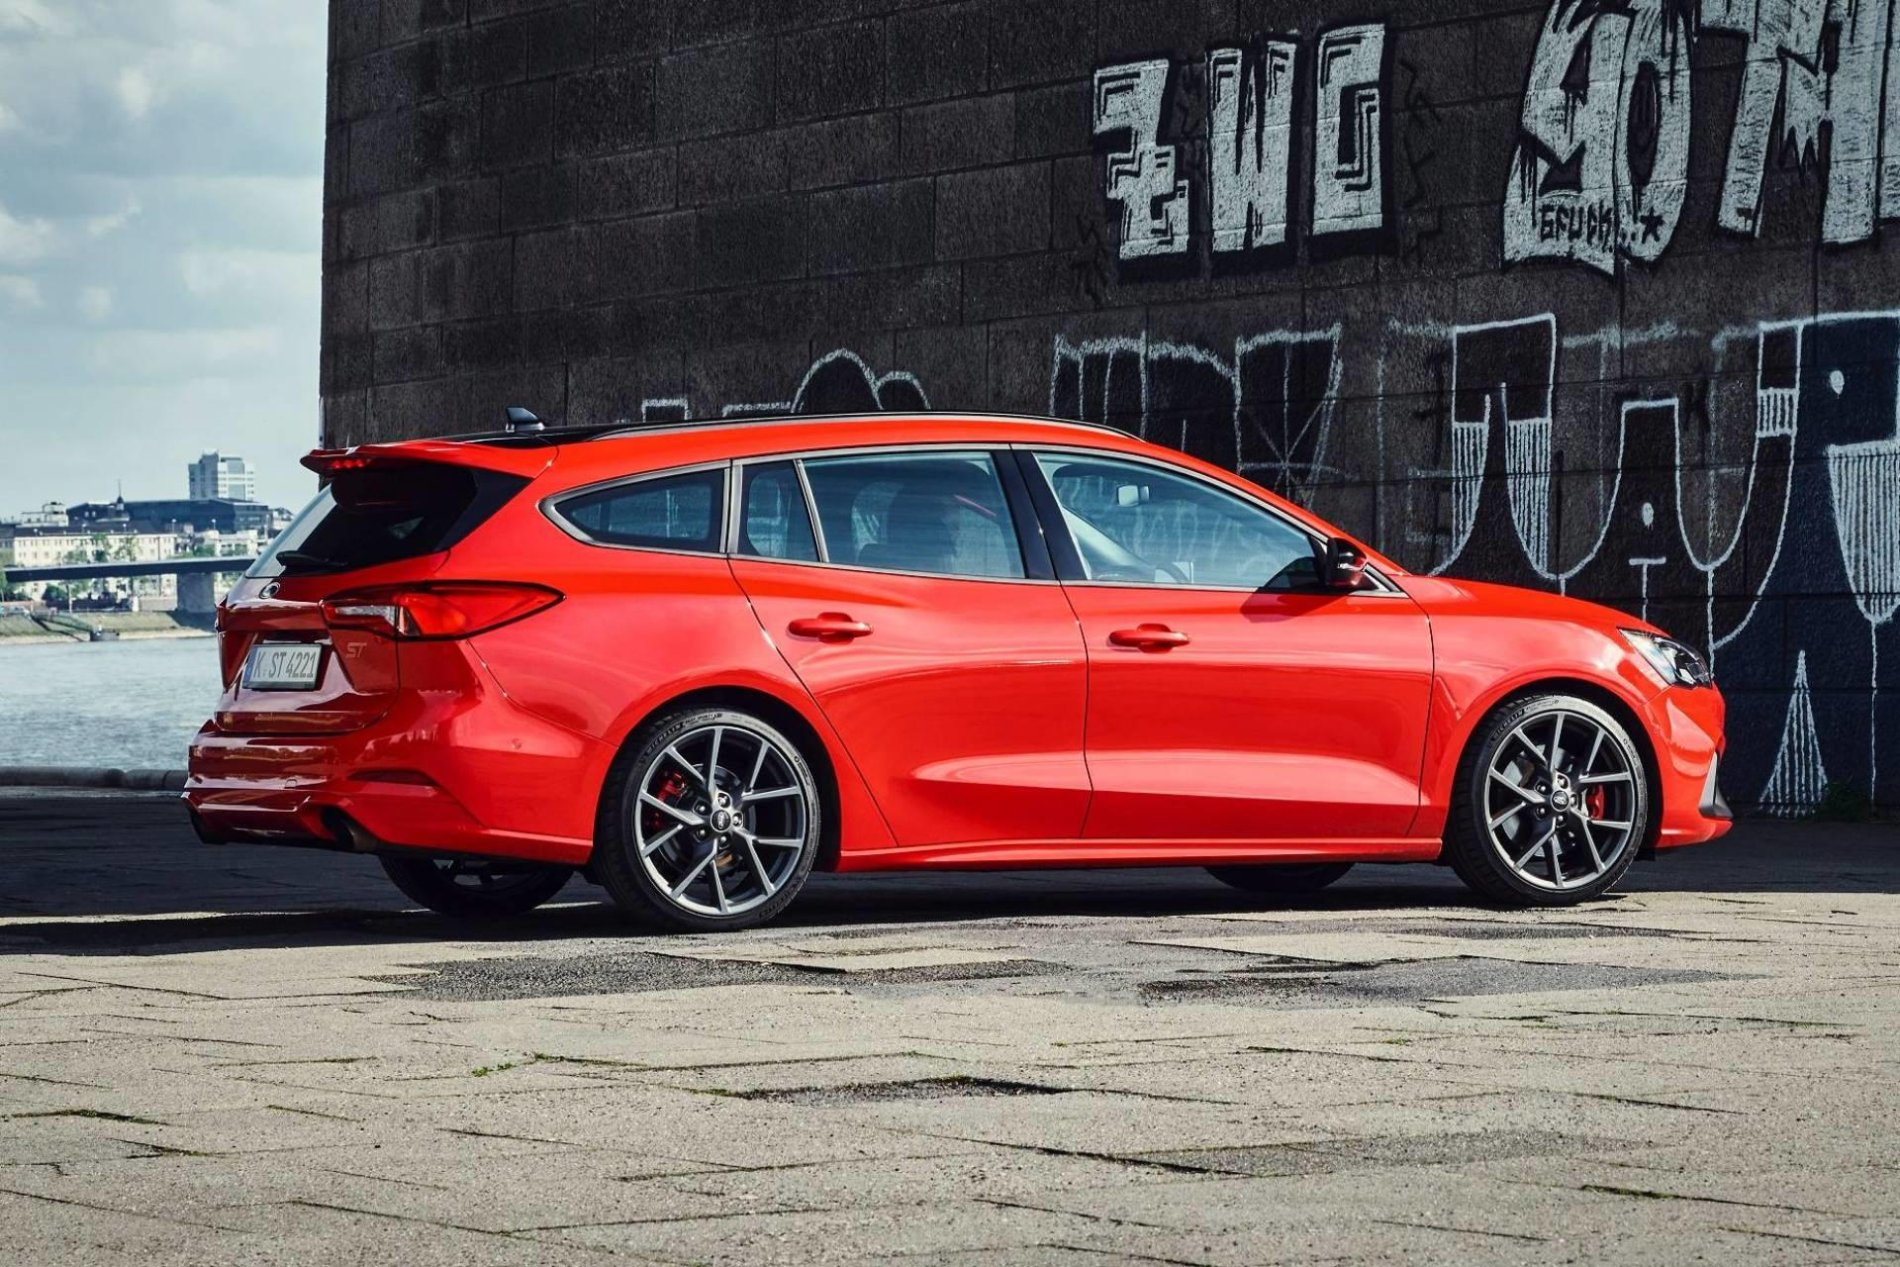 Ford Focus ST Wagon - Ford Focus ST Wagon